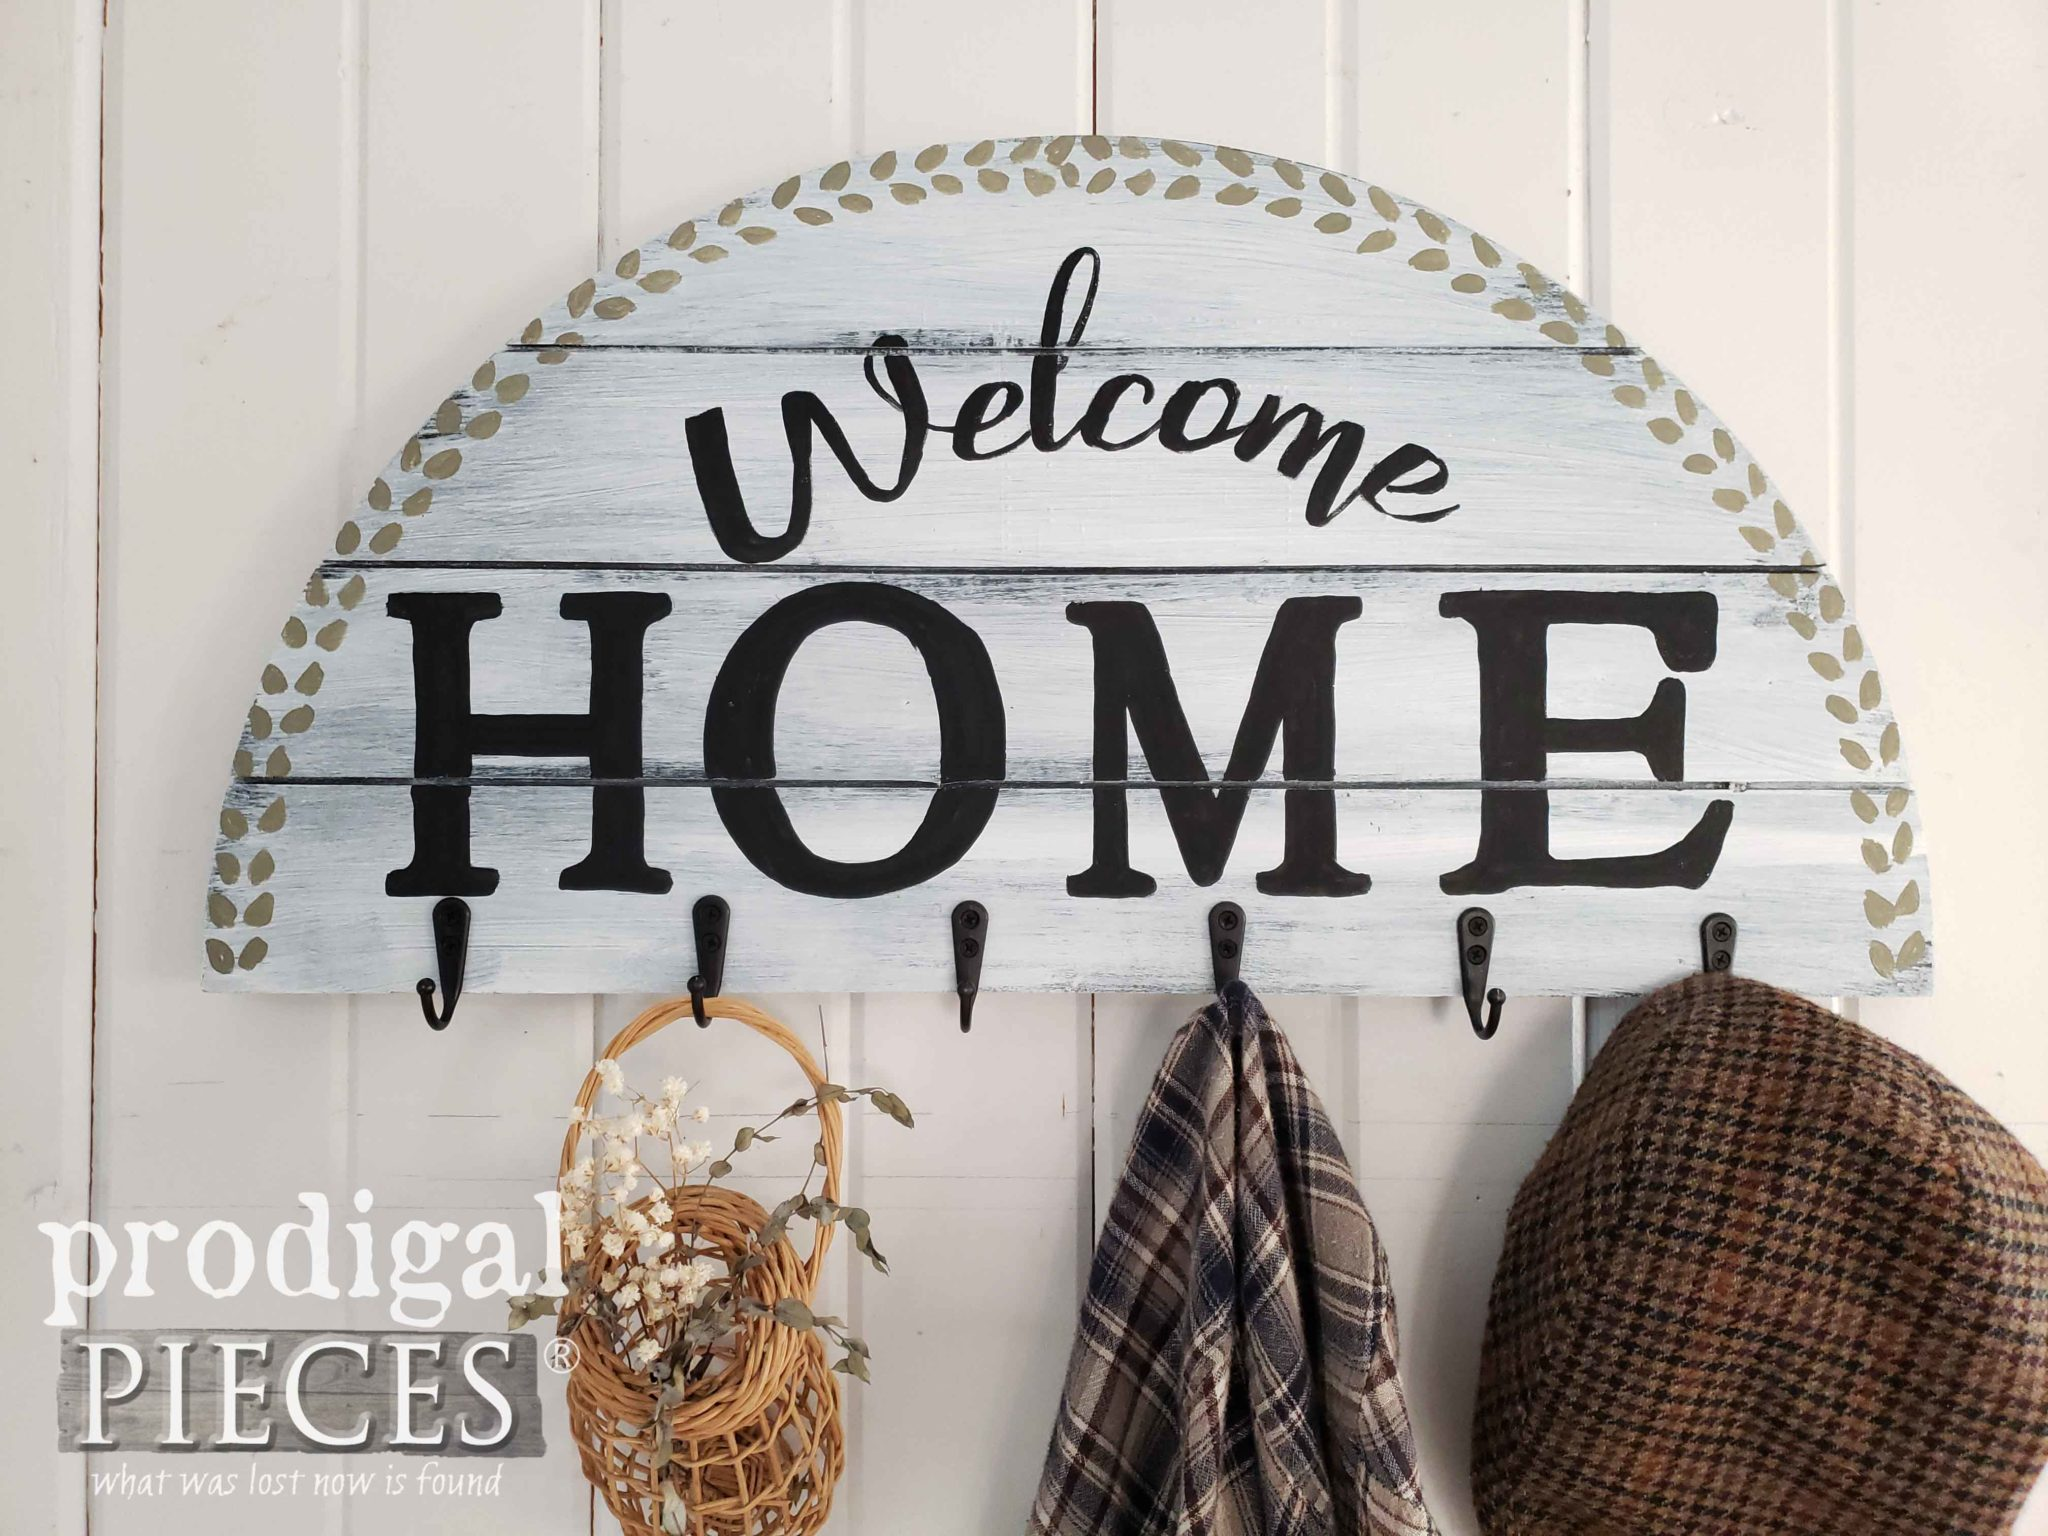 DIY Modern Farmhouse Welcome Home Sign Created by Larissa of Prodigal Pieces using Thrifted Wall Art | Details at prodigalpieces.com #prodigalpieces #home #homedecor #diy #handmade #farmhouse #homedecorideas